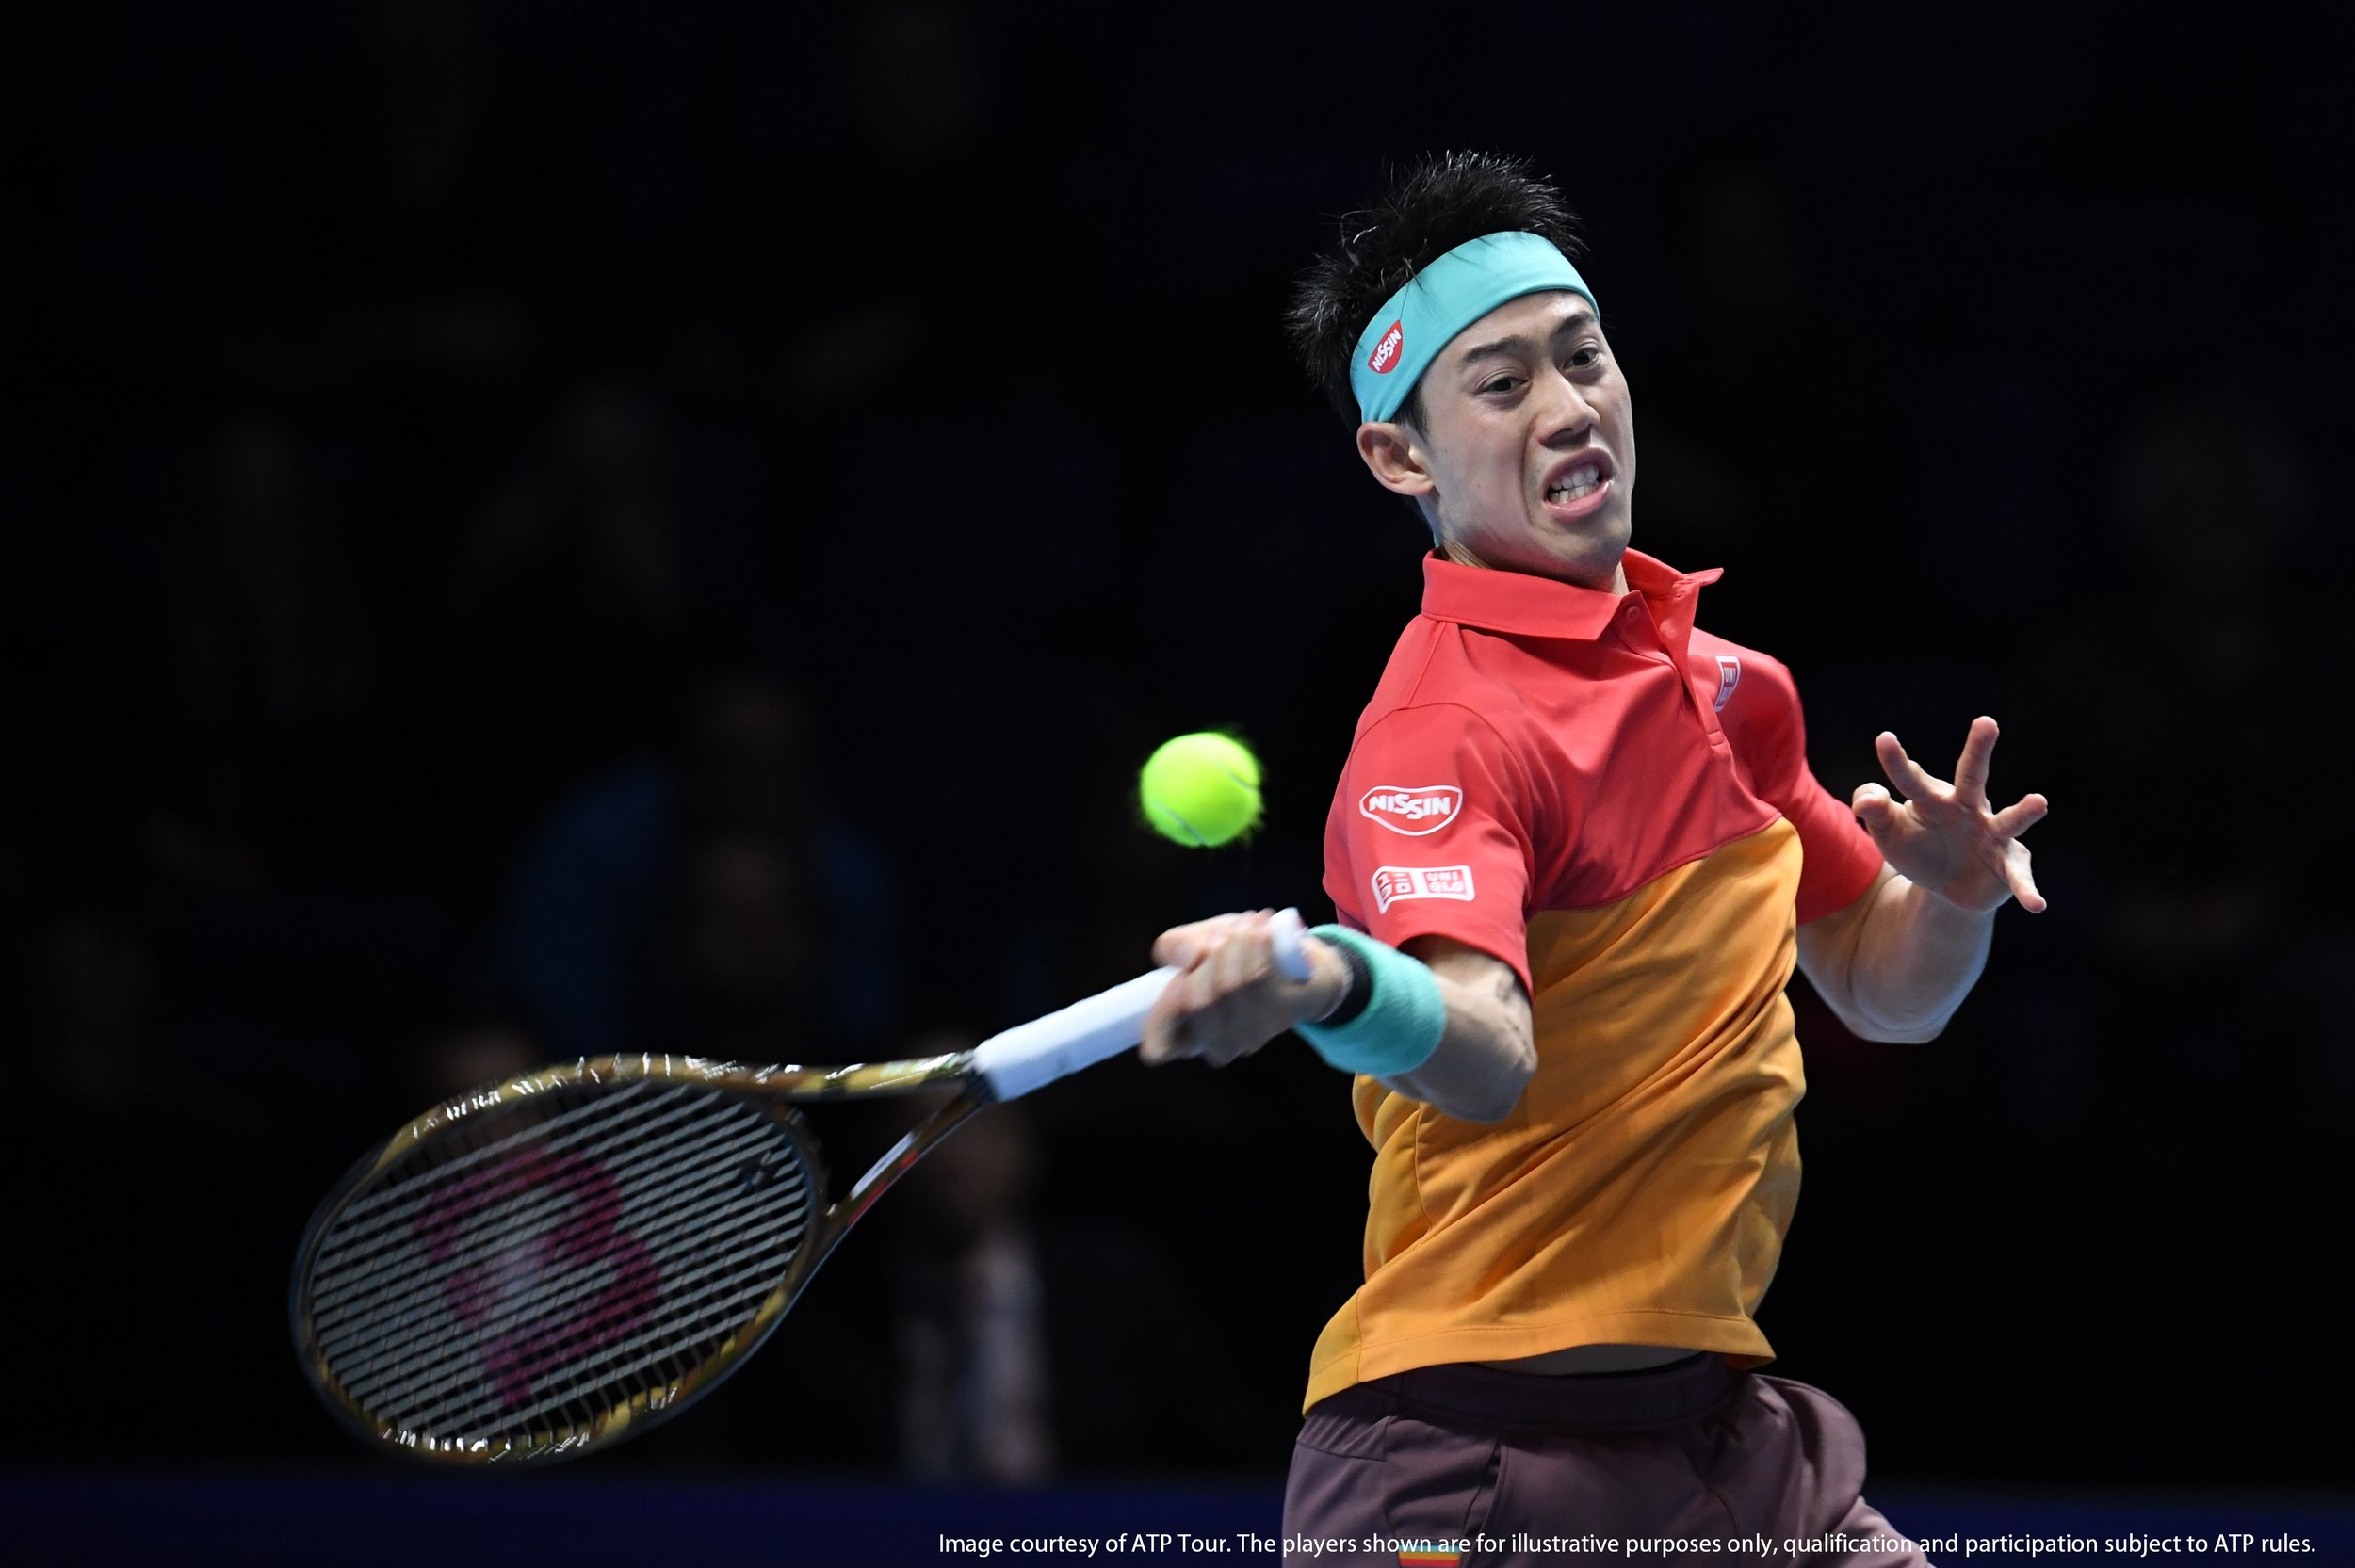 LONDON, U.K. - November 13: Images of match winner Kevin Anderson of South Africa and Kei Nishikori of Japan at the Next Gen ATP Finals at The O2 arena on November 13, 2018 in London, United Kingdom (Photo by Peter Staples/ATP World Tour)